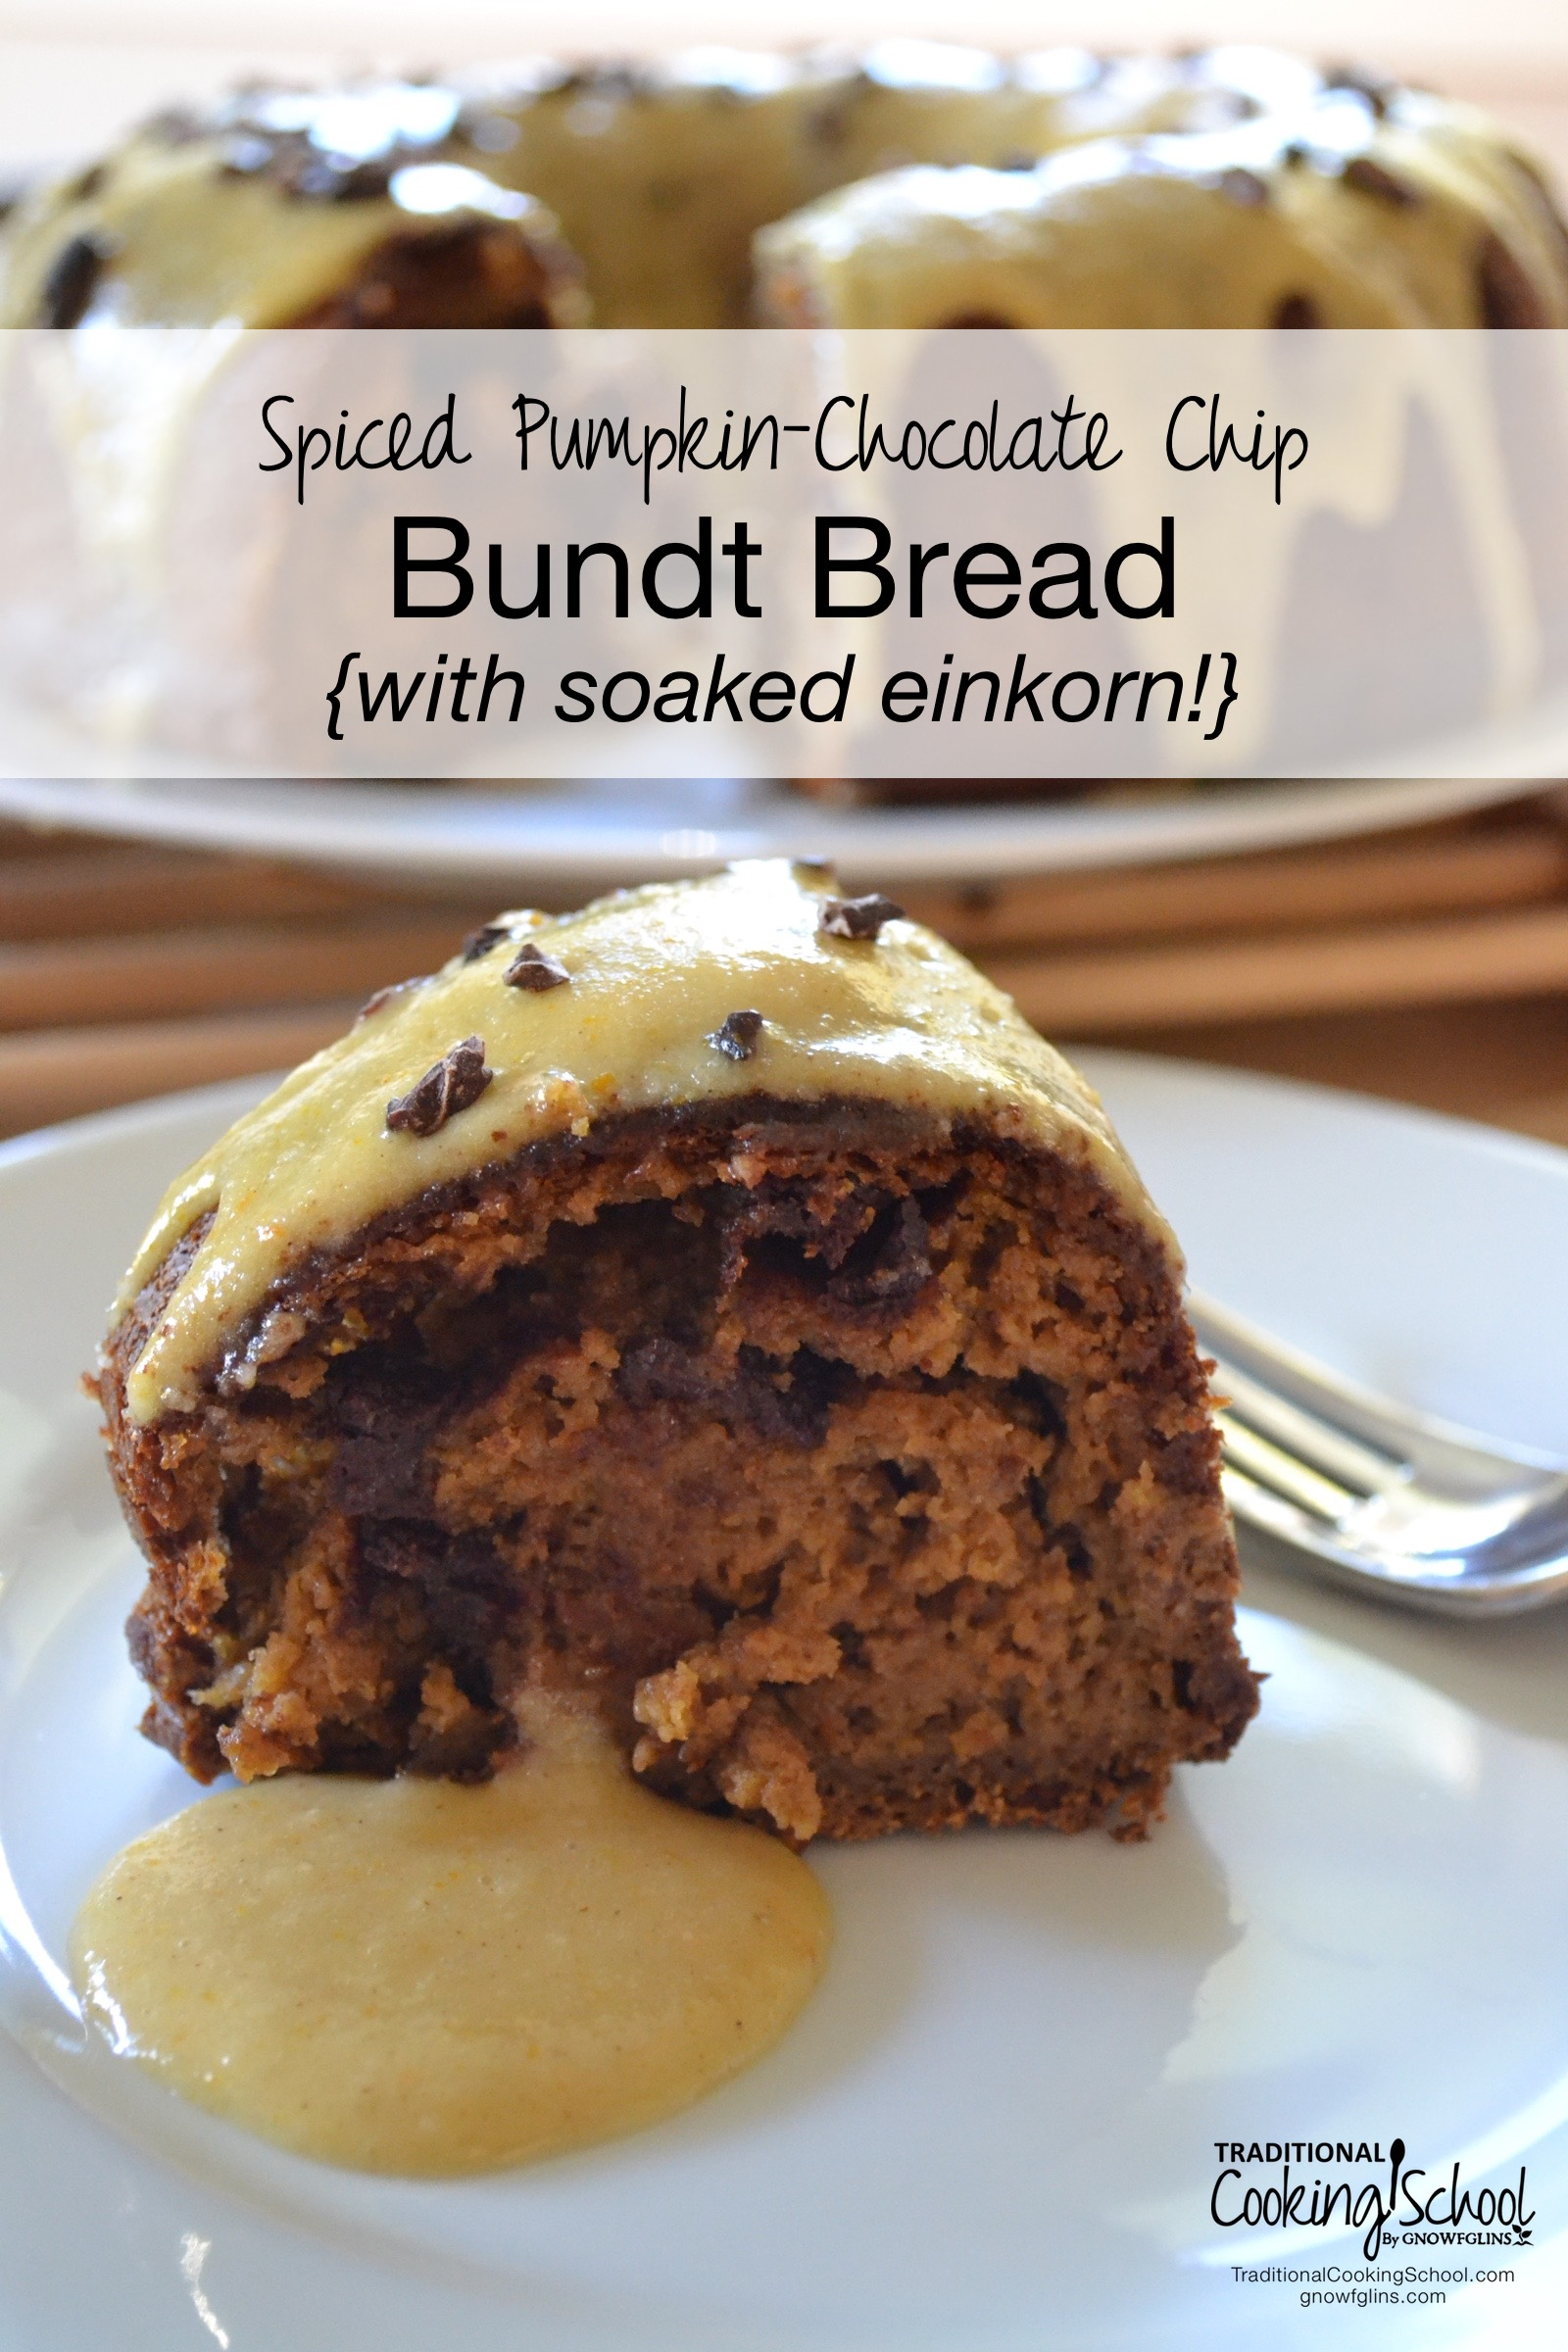 Spiced Pumpkin-Chocolate Chip Bundt Bread {with soaked einkorn} | Is it a cake or a quick bread? It really doesn't matter what you call it because ... pumpkin! It's really not a cake, but if you want to serve it for dessert, I promise no one will know the difference. It's time to bake something pumpkin in a Traditional way with soaked einkorn! | TraditionalCookingSchool.com